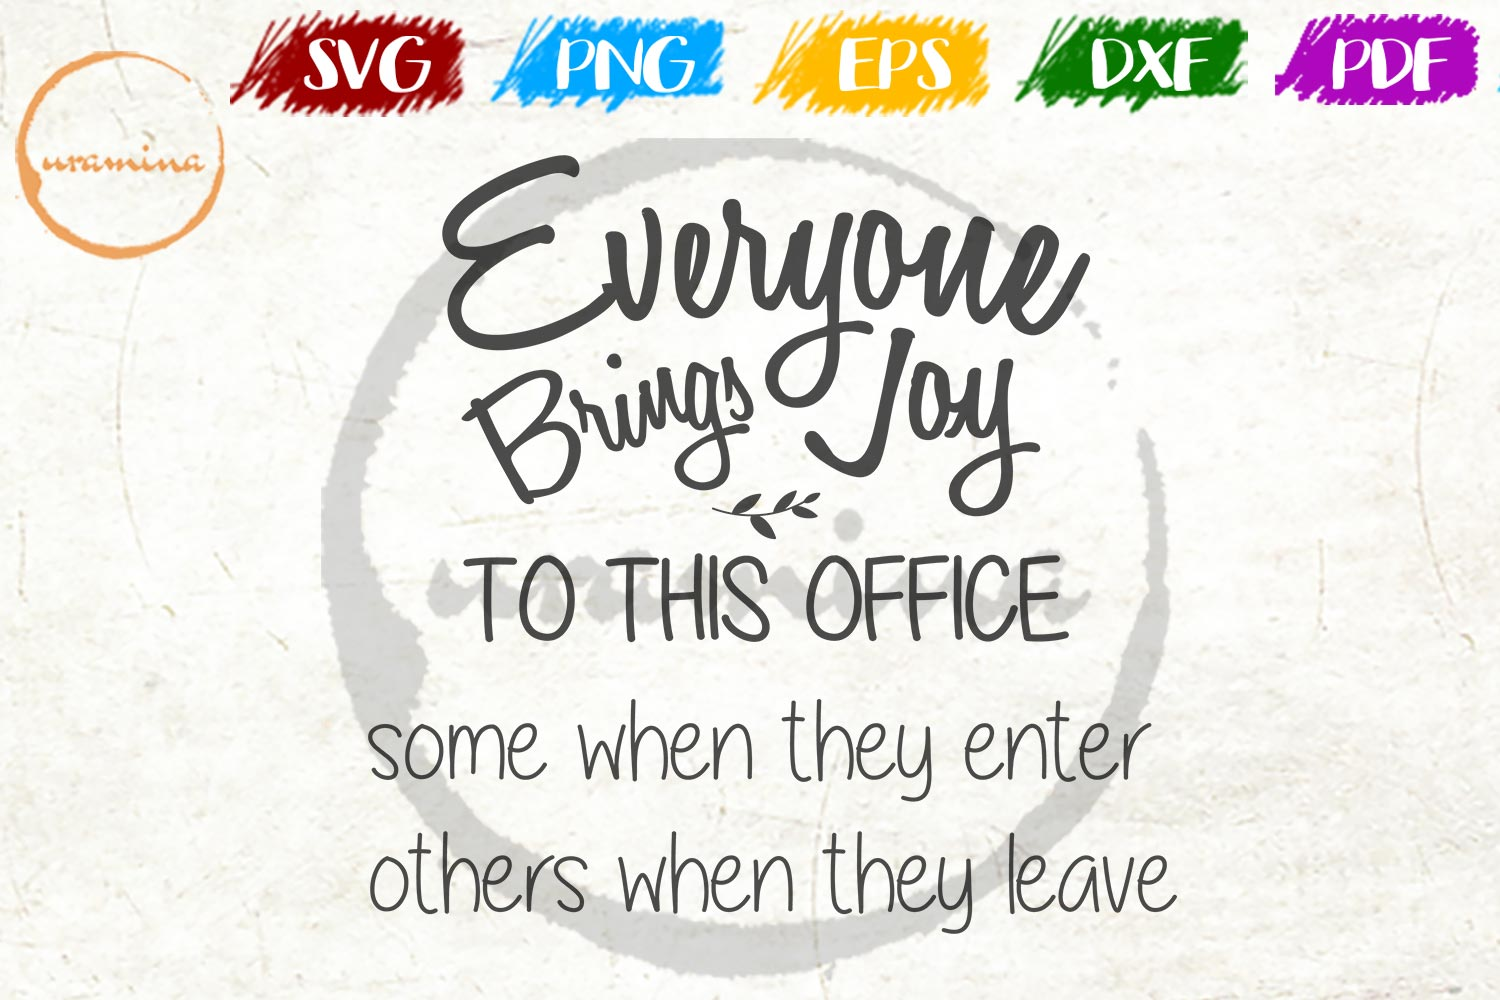 Download Free Everyone Brings Joy To This Office Graphic By Uramina Creative for Cricut Explore, Silhouette and other cutting machines.